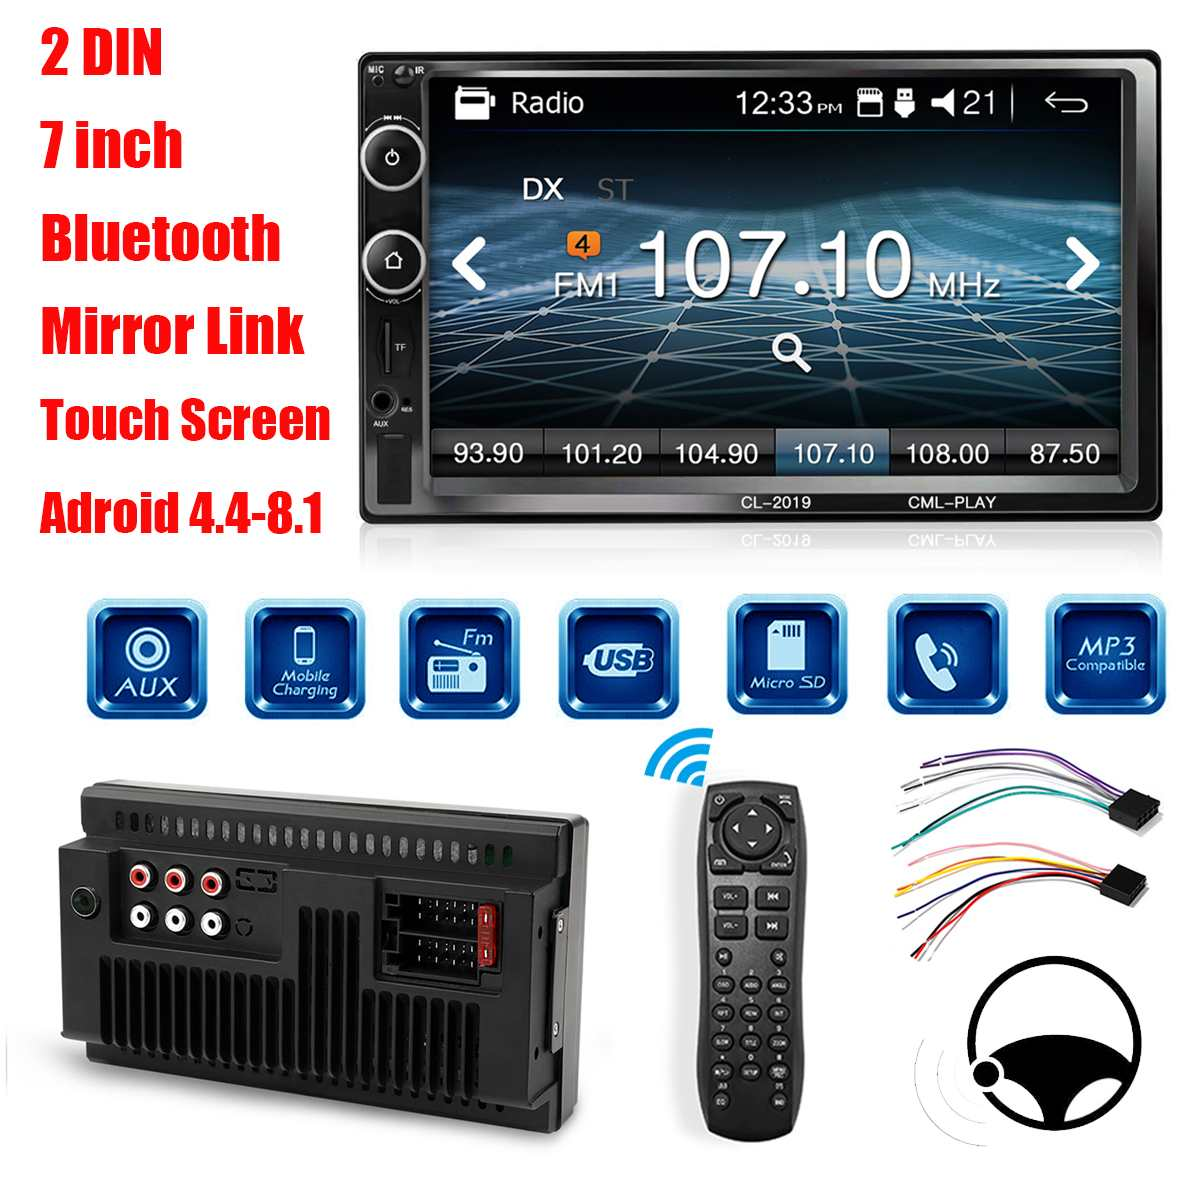 7 Inch 2DIN bluetooth Car MP5 Player HD Touchable Car Radio Audio Hands Free Remote Control AUX FM USB Car Multimedia Player